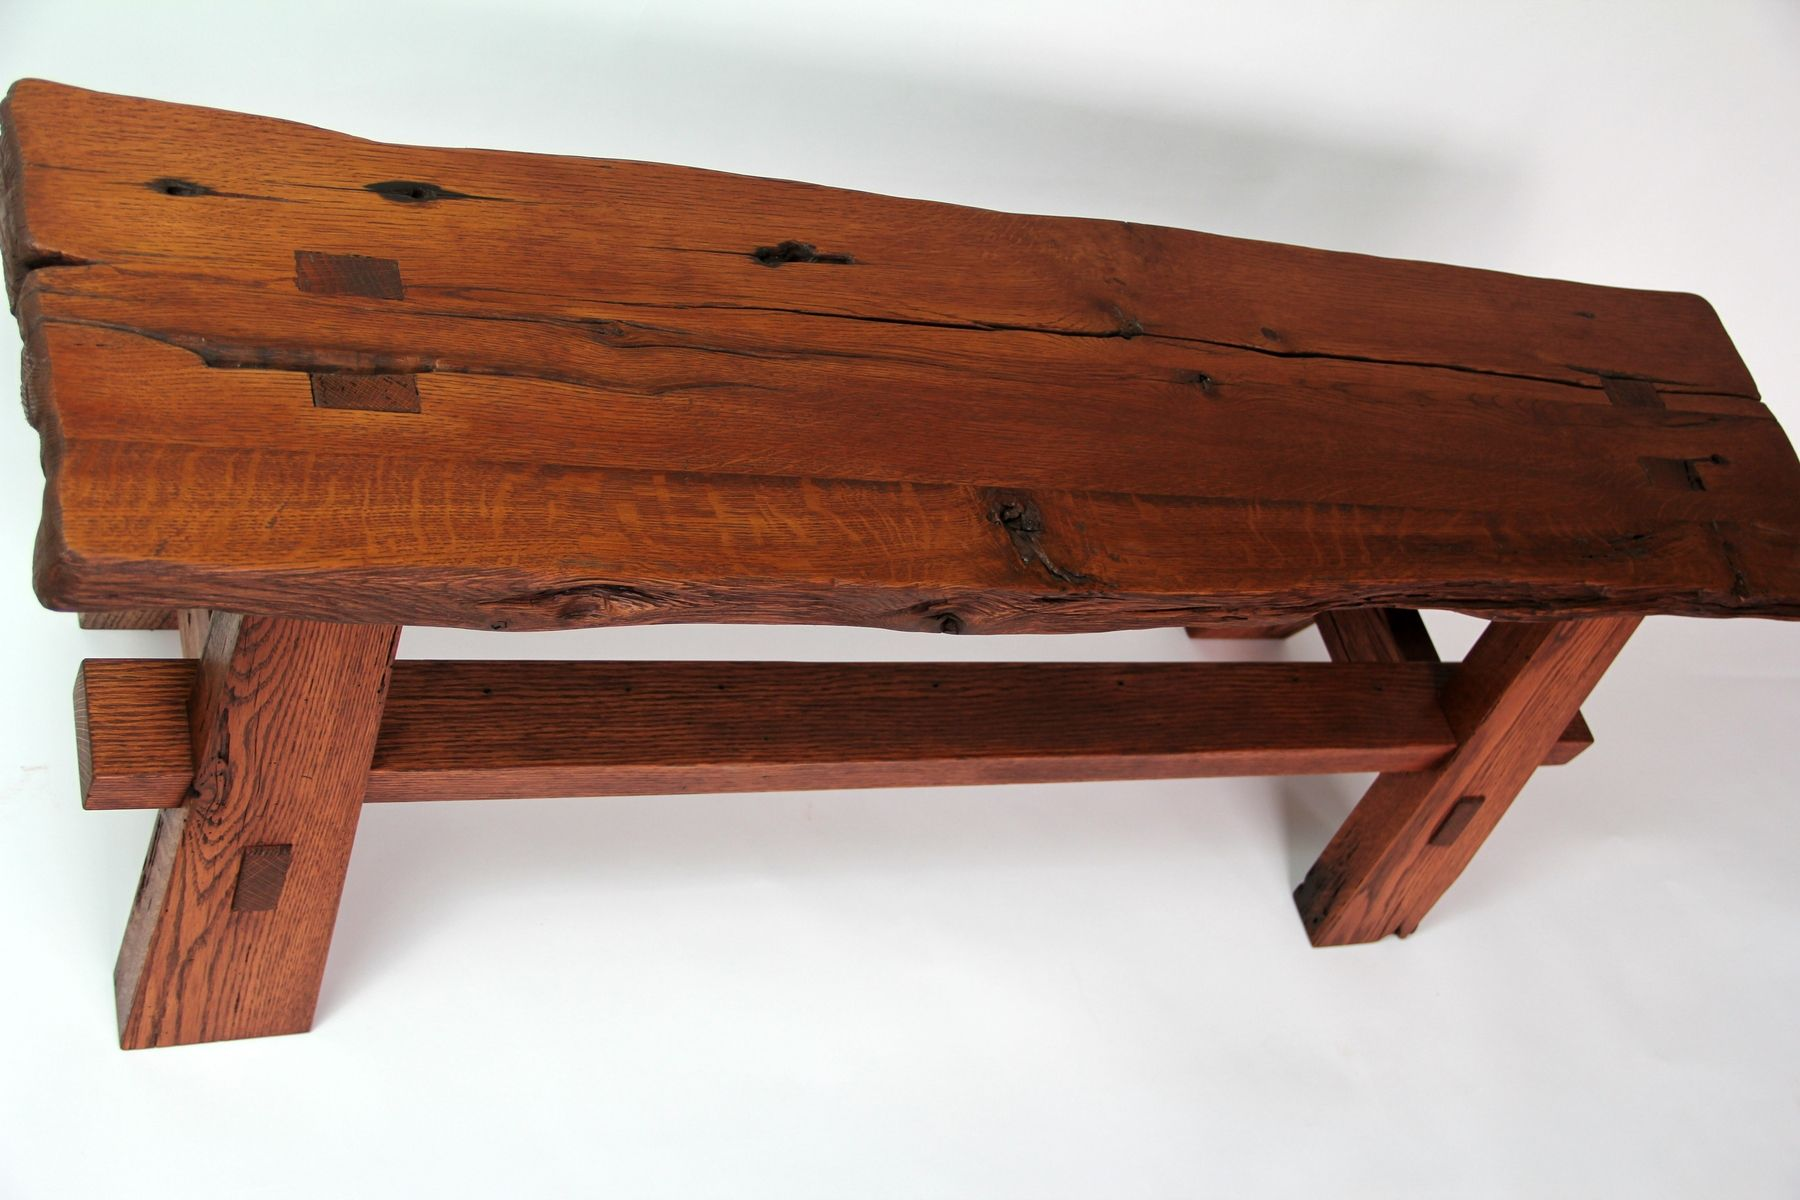 Hand Crafted Rustic Reclaimed Barnwood Bench By Intelligent Design Woodwork Custommade